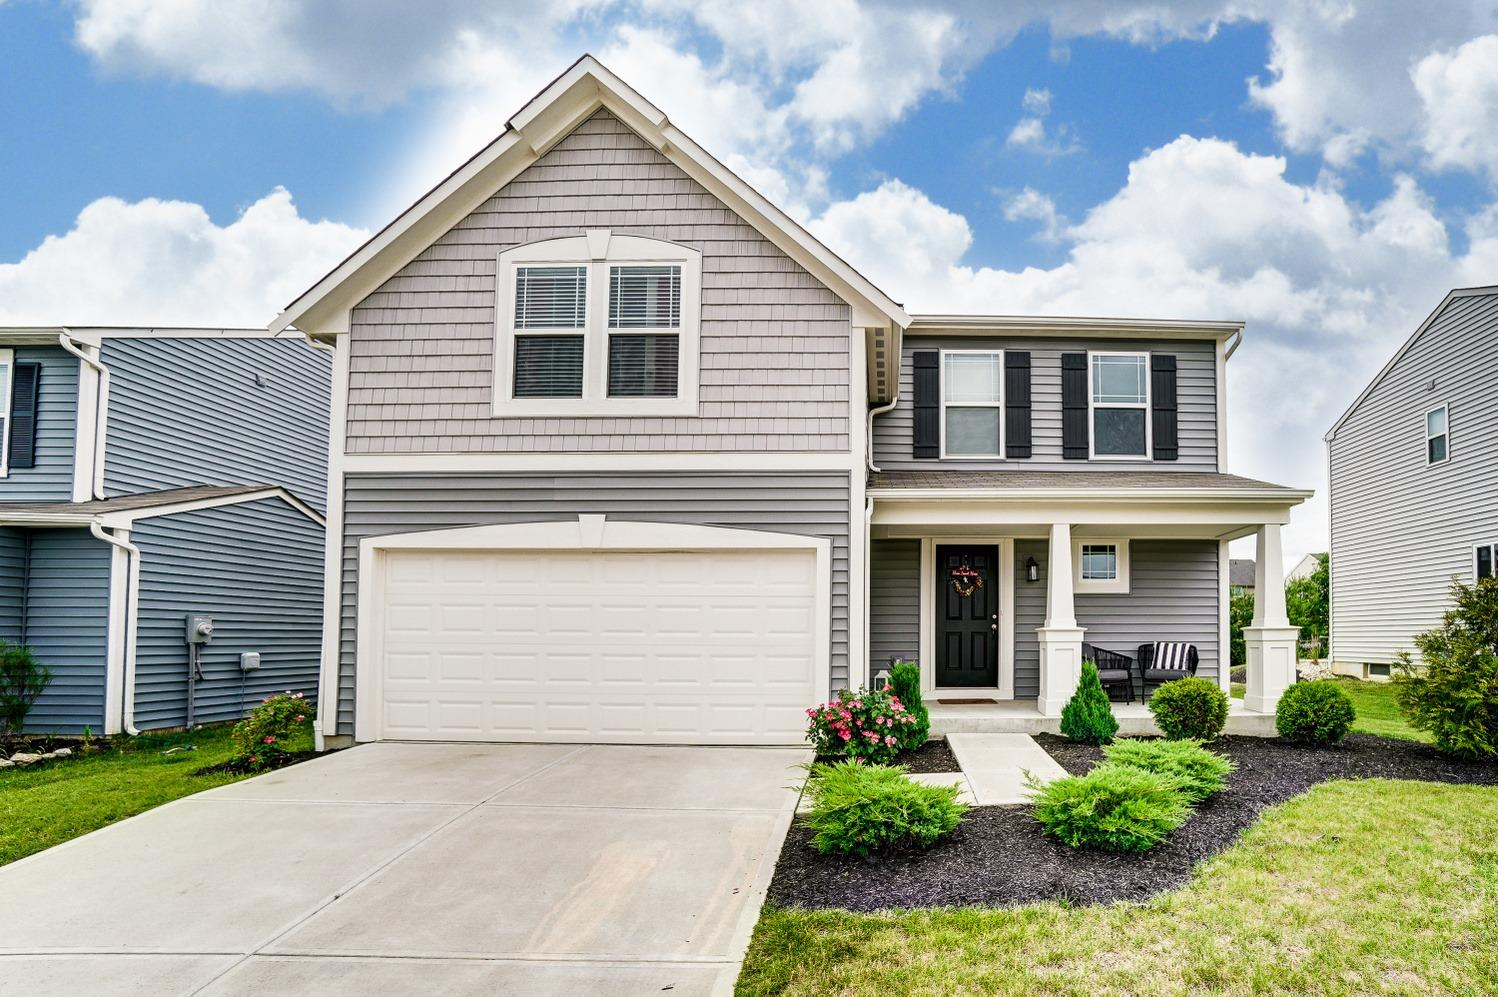 Property for sale at 4255 Hunting Hawk, Turtle Creek Twp,  Ohio 45036